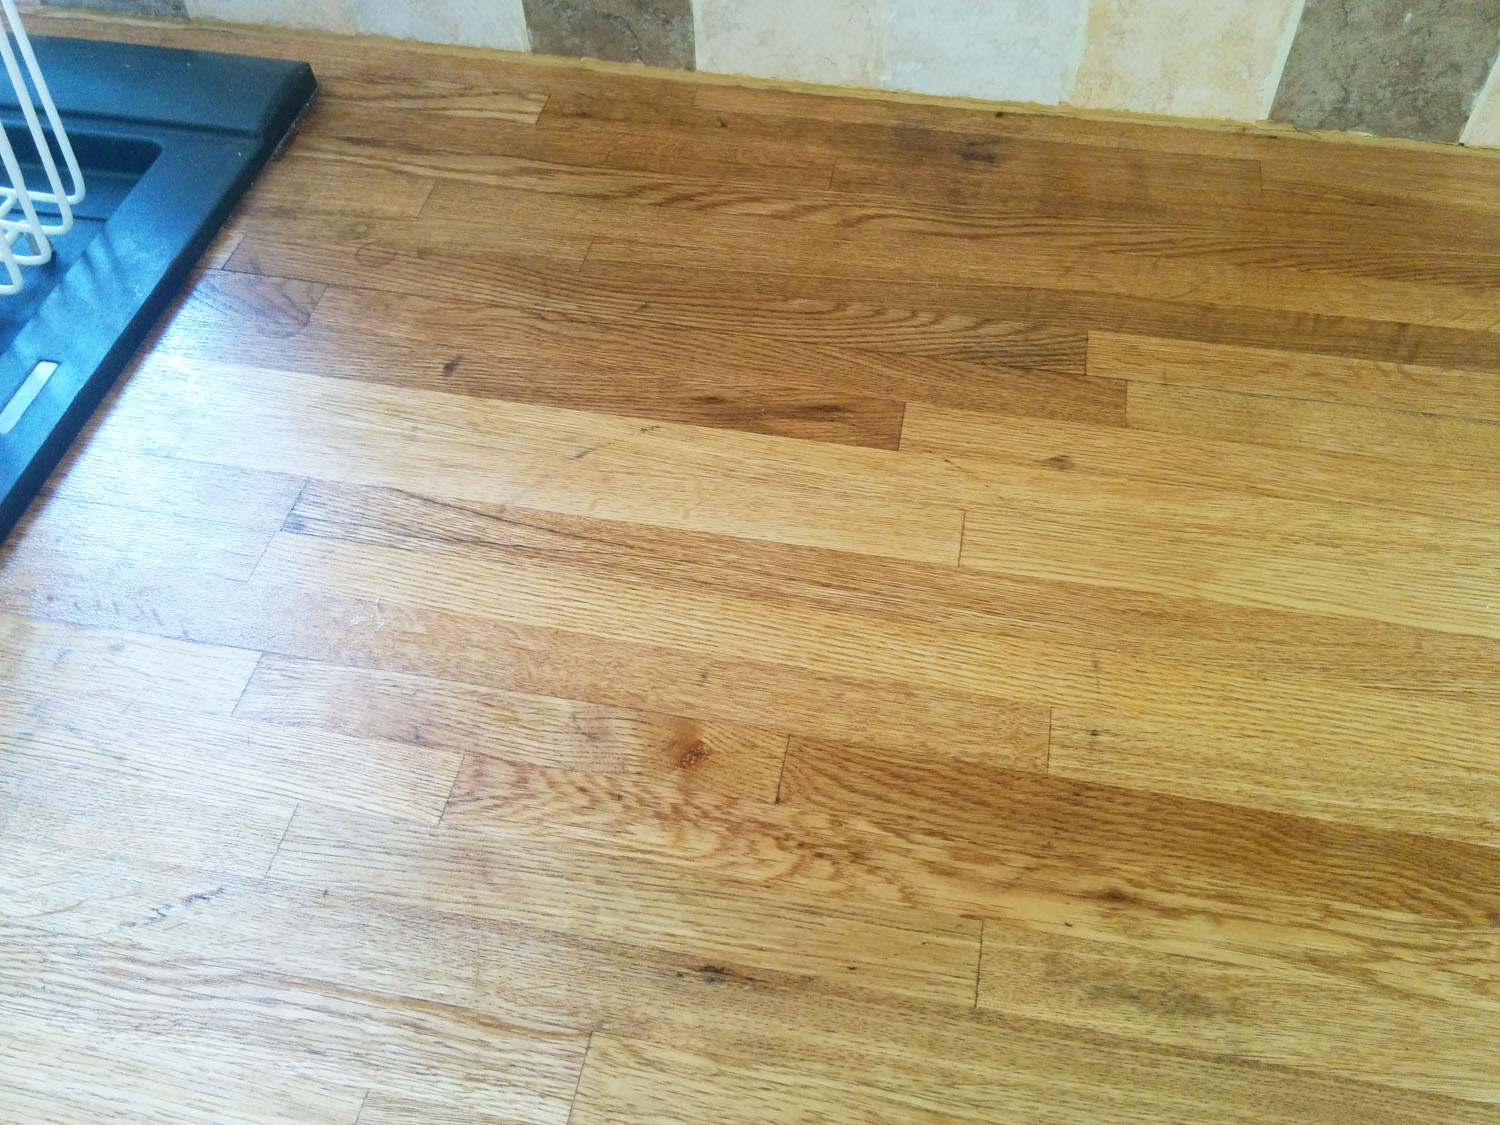 Kitchen worktop after oiling 1